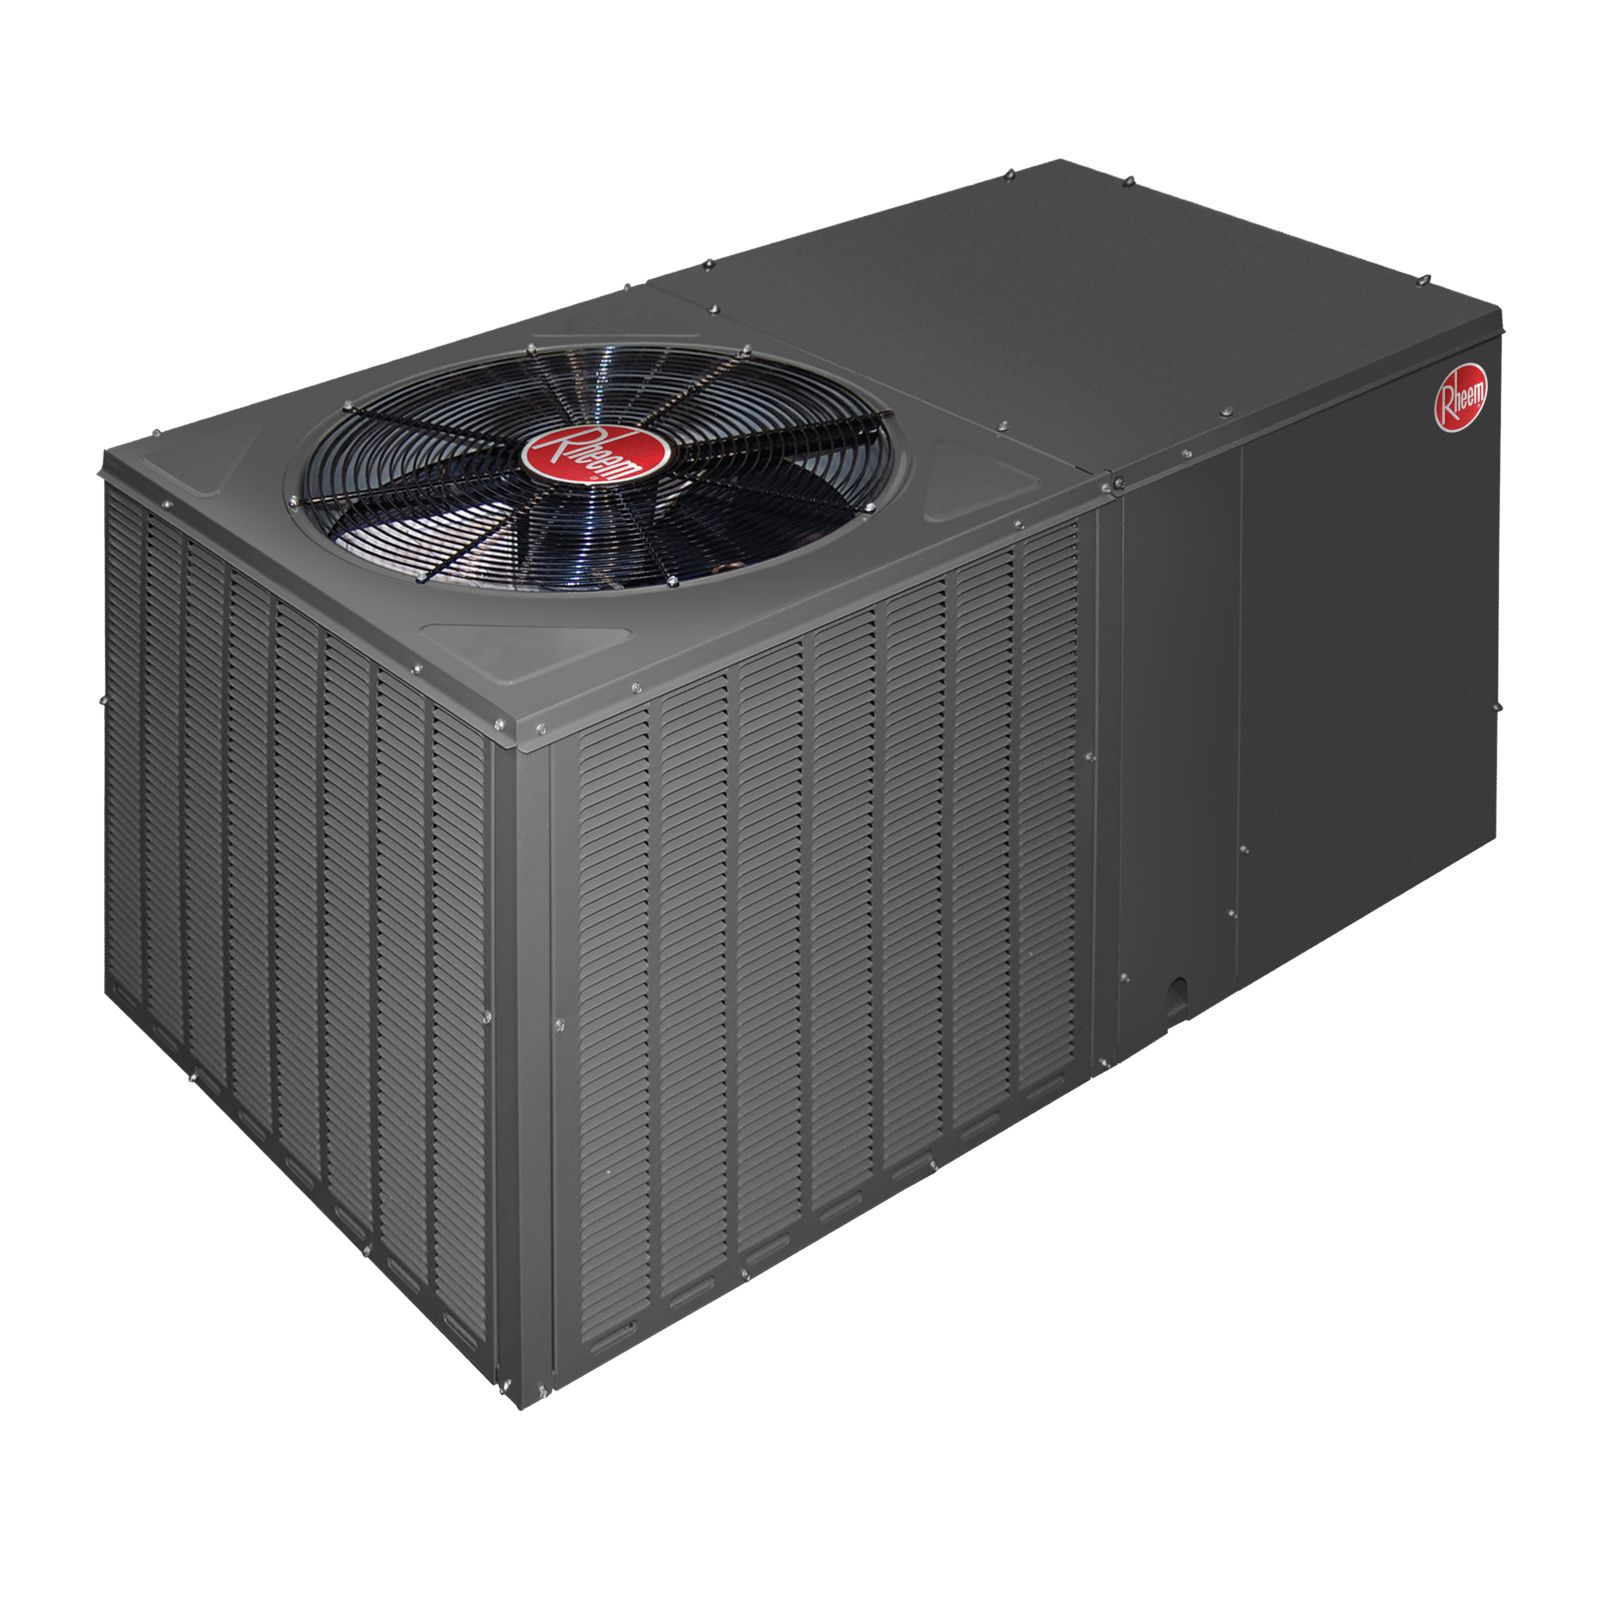 Rheem RQPM-A043JK000AUA - Classic 3 1/2 Ton 14 SEER, R-410A, Packaged Heat Pump With Horizontal Discharge, 208-230V, 1 Phase